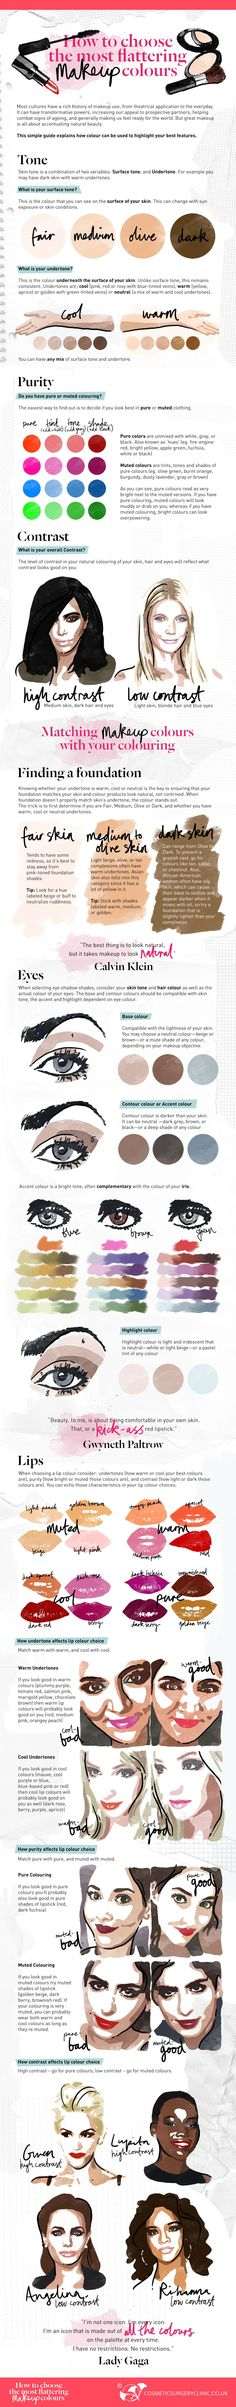 How To Choose the Most Flattering Makeup Colors #infographic ~ Visualistan